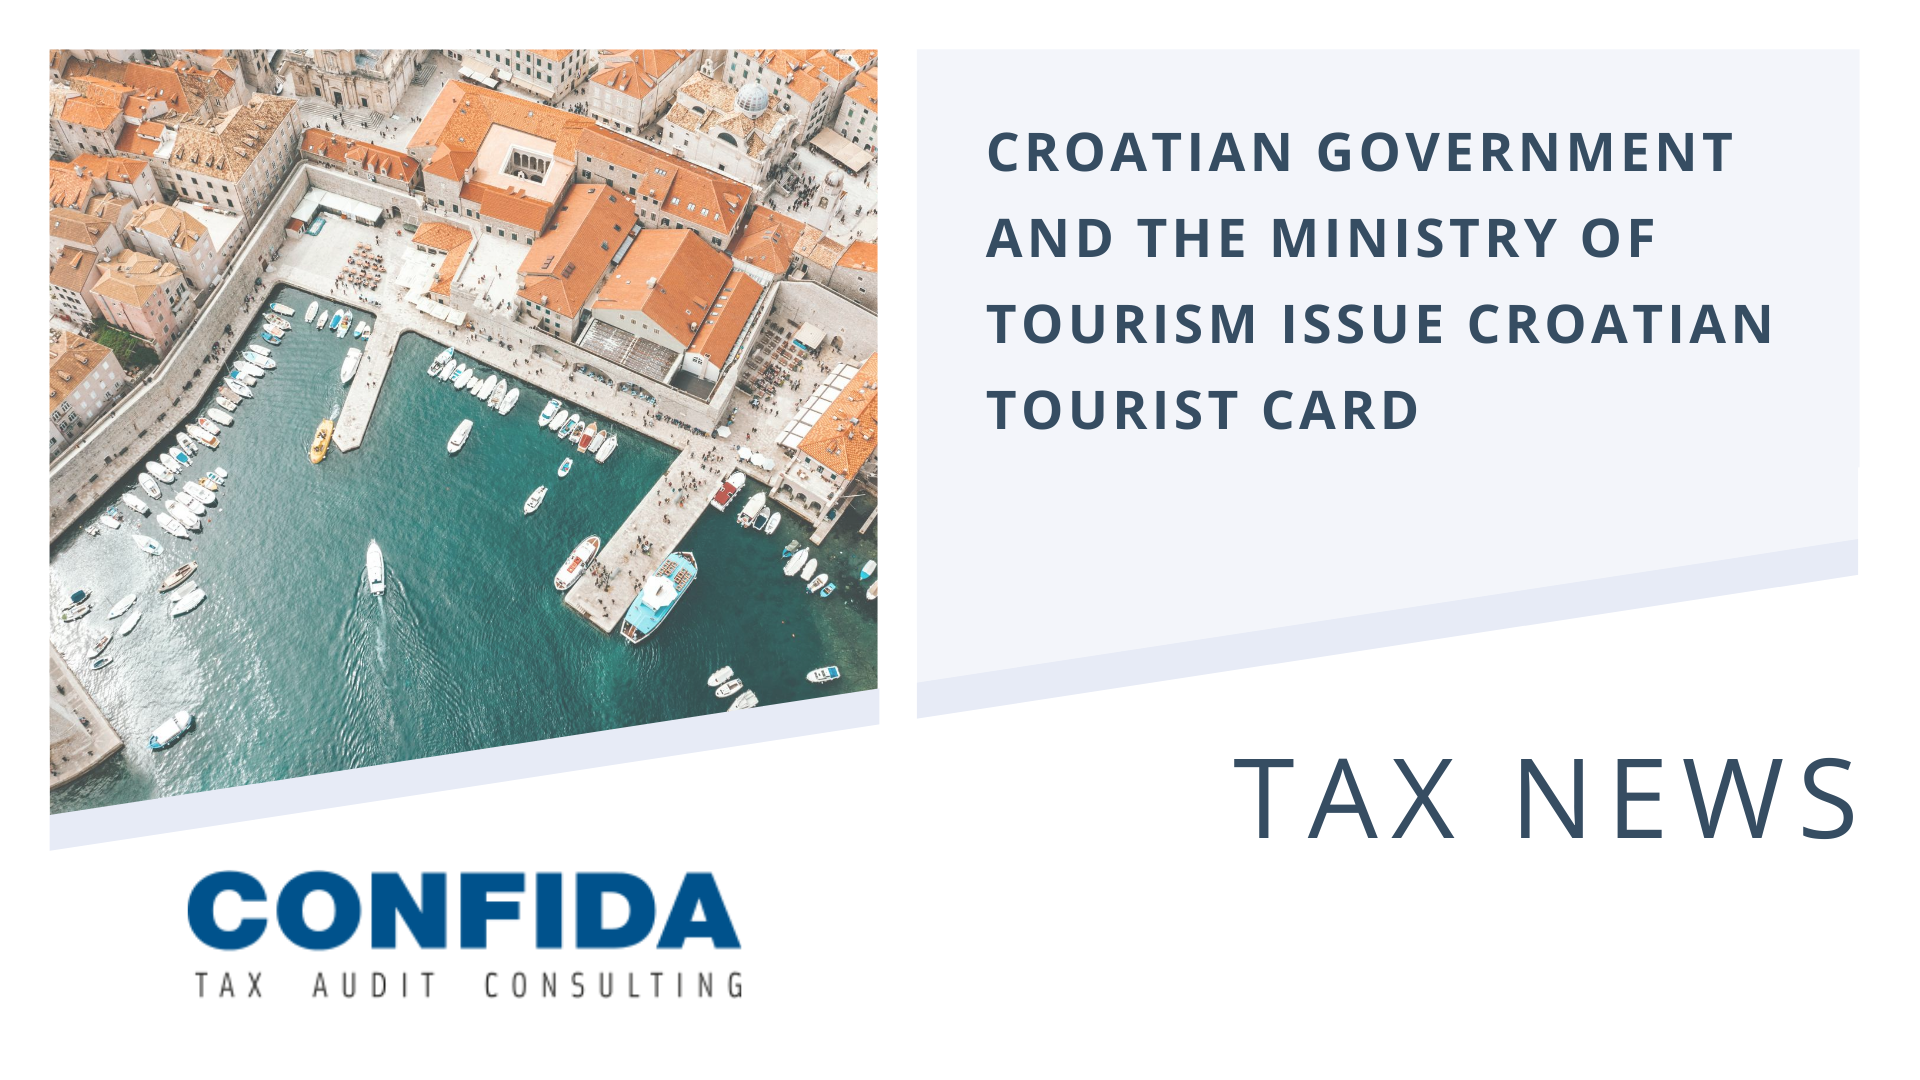 Croatian Government and the Ministry of Tourism Issue Croatian Tourist Card